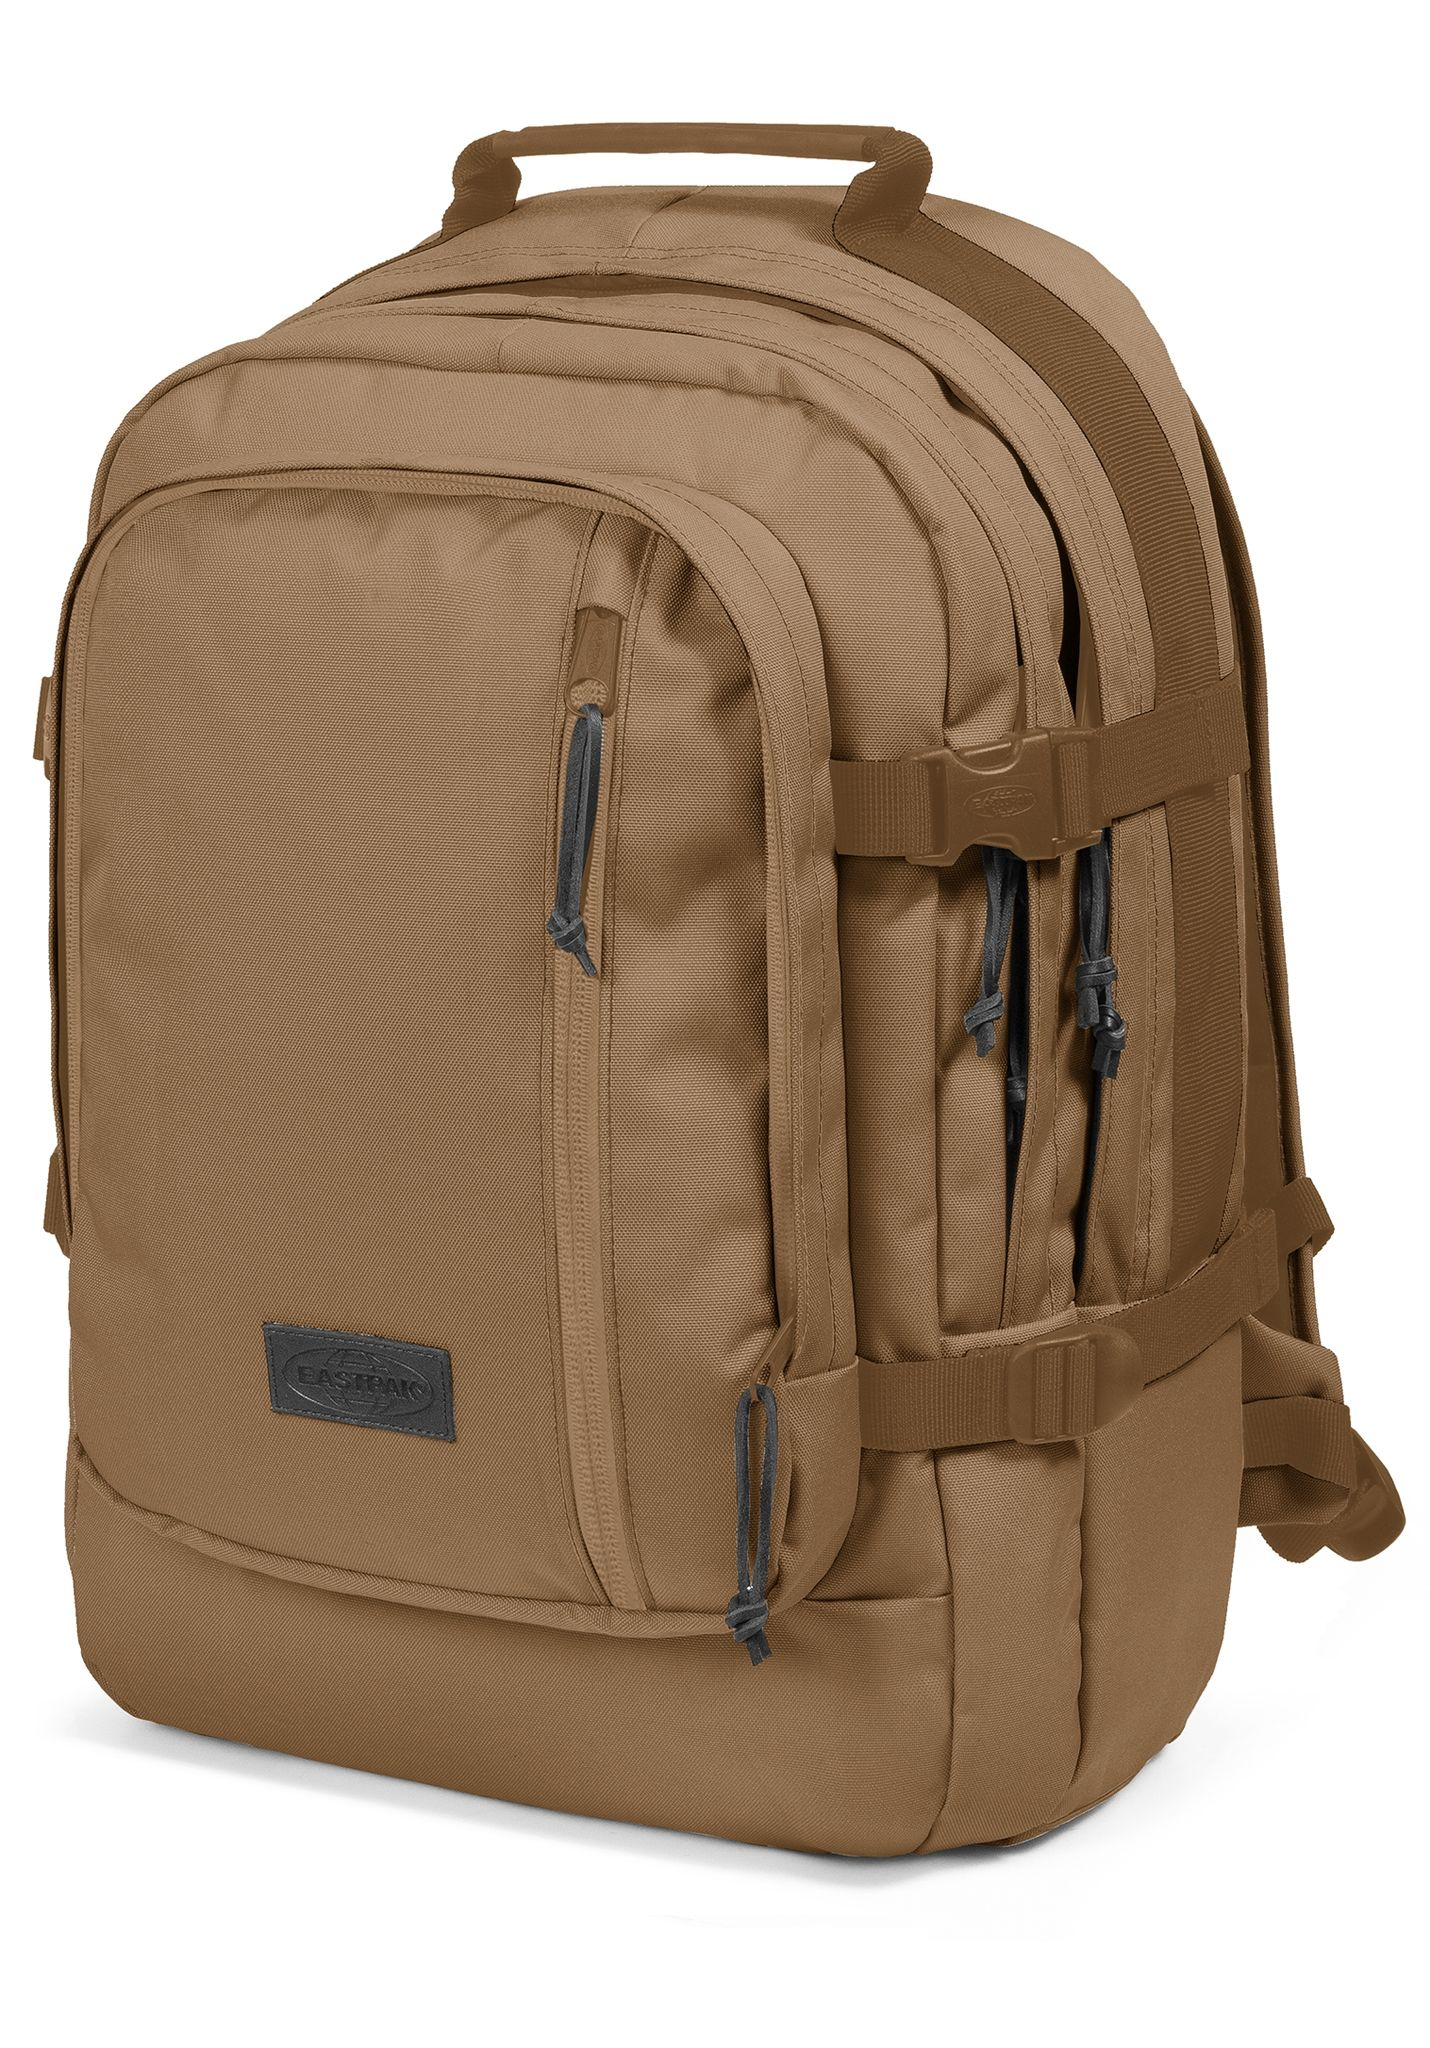 Dos Volker Sports À Eastpak Planet Marron Wzpfqc Sac wBIHaa